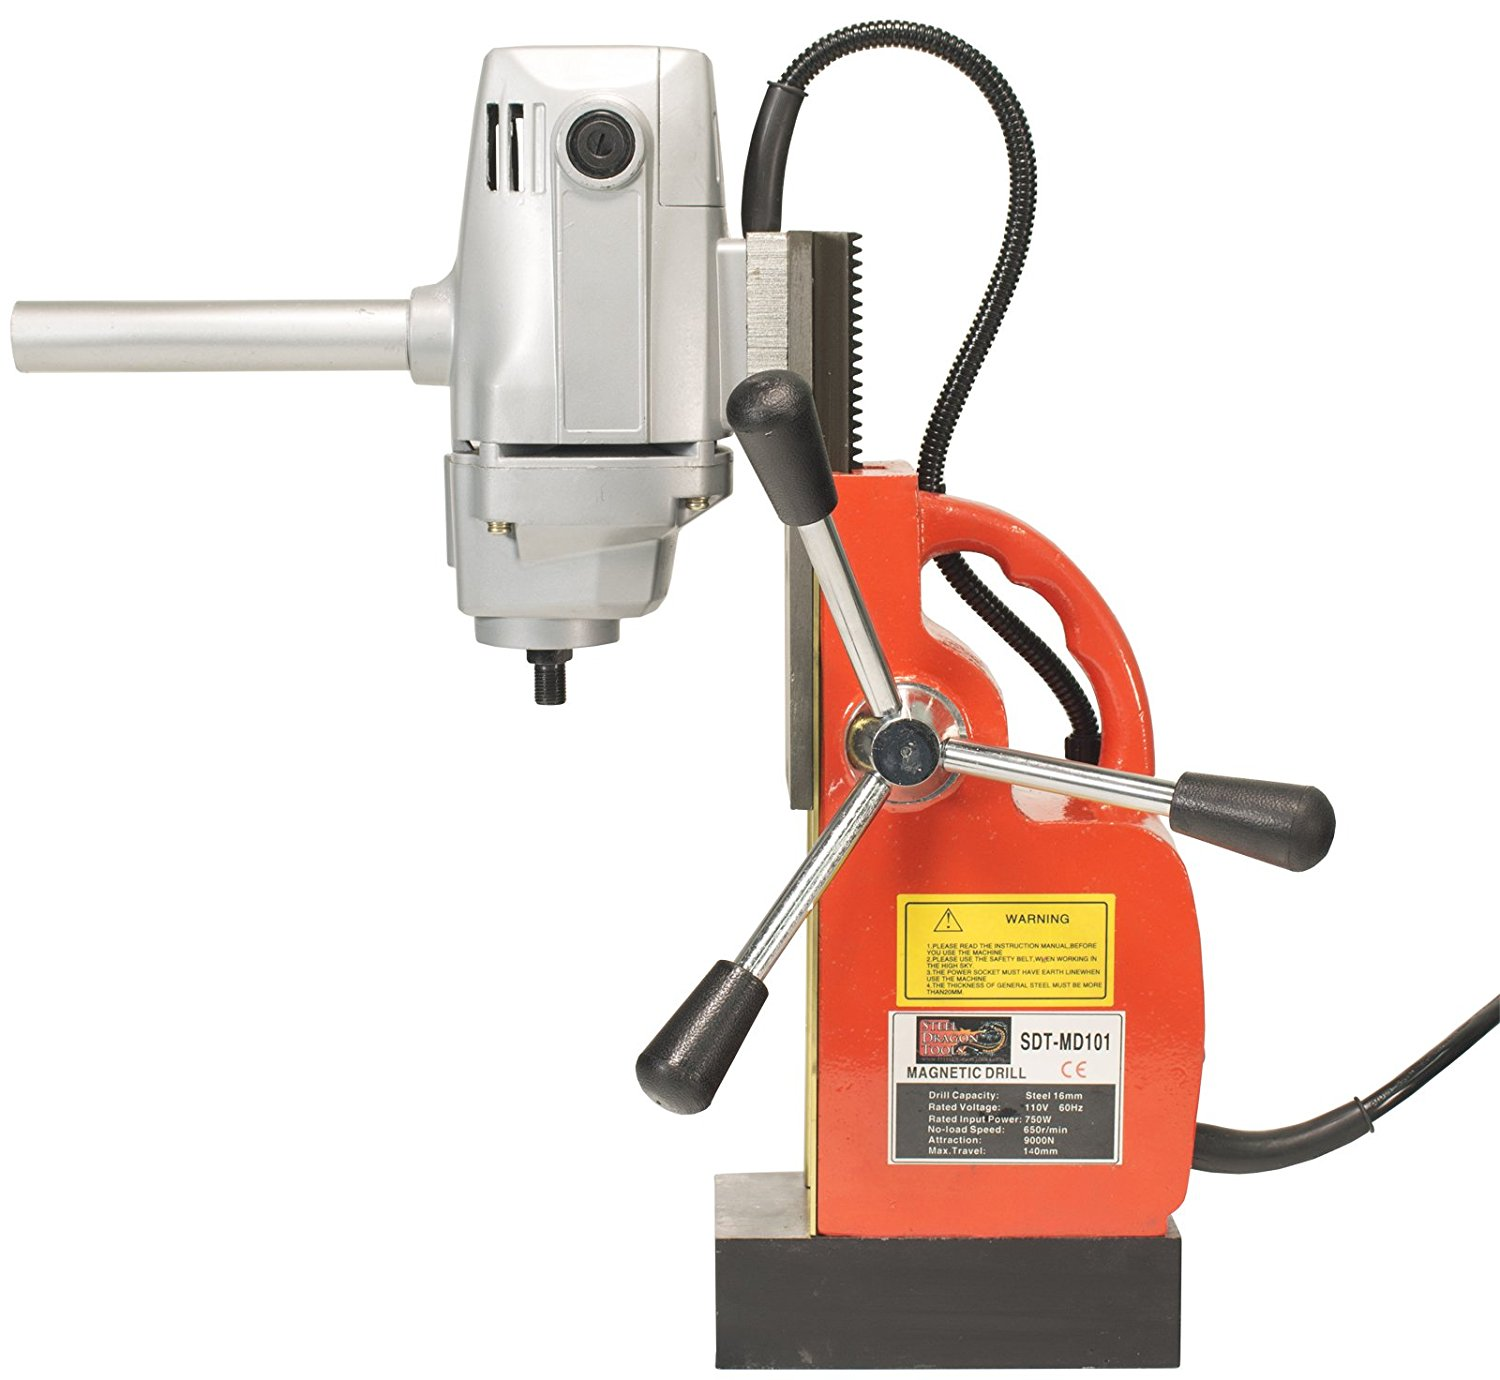 Steel Dragon Tools drill press